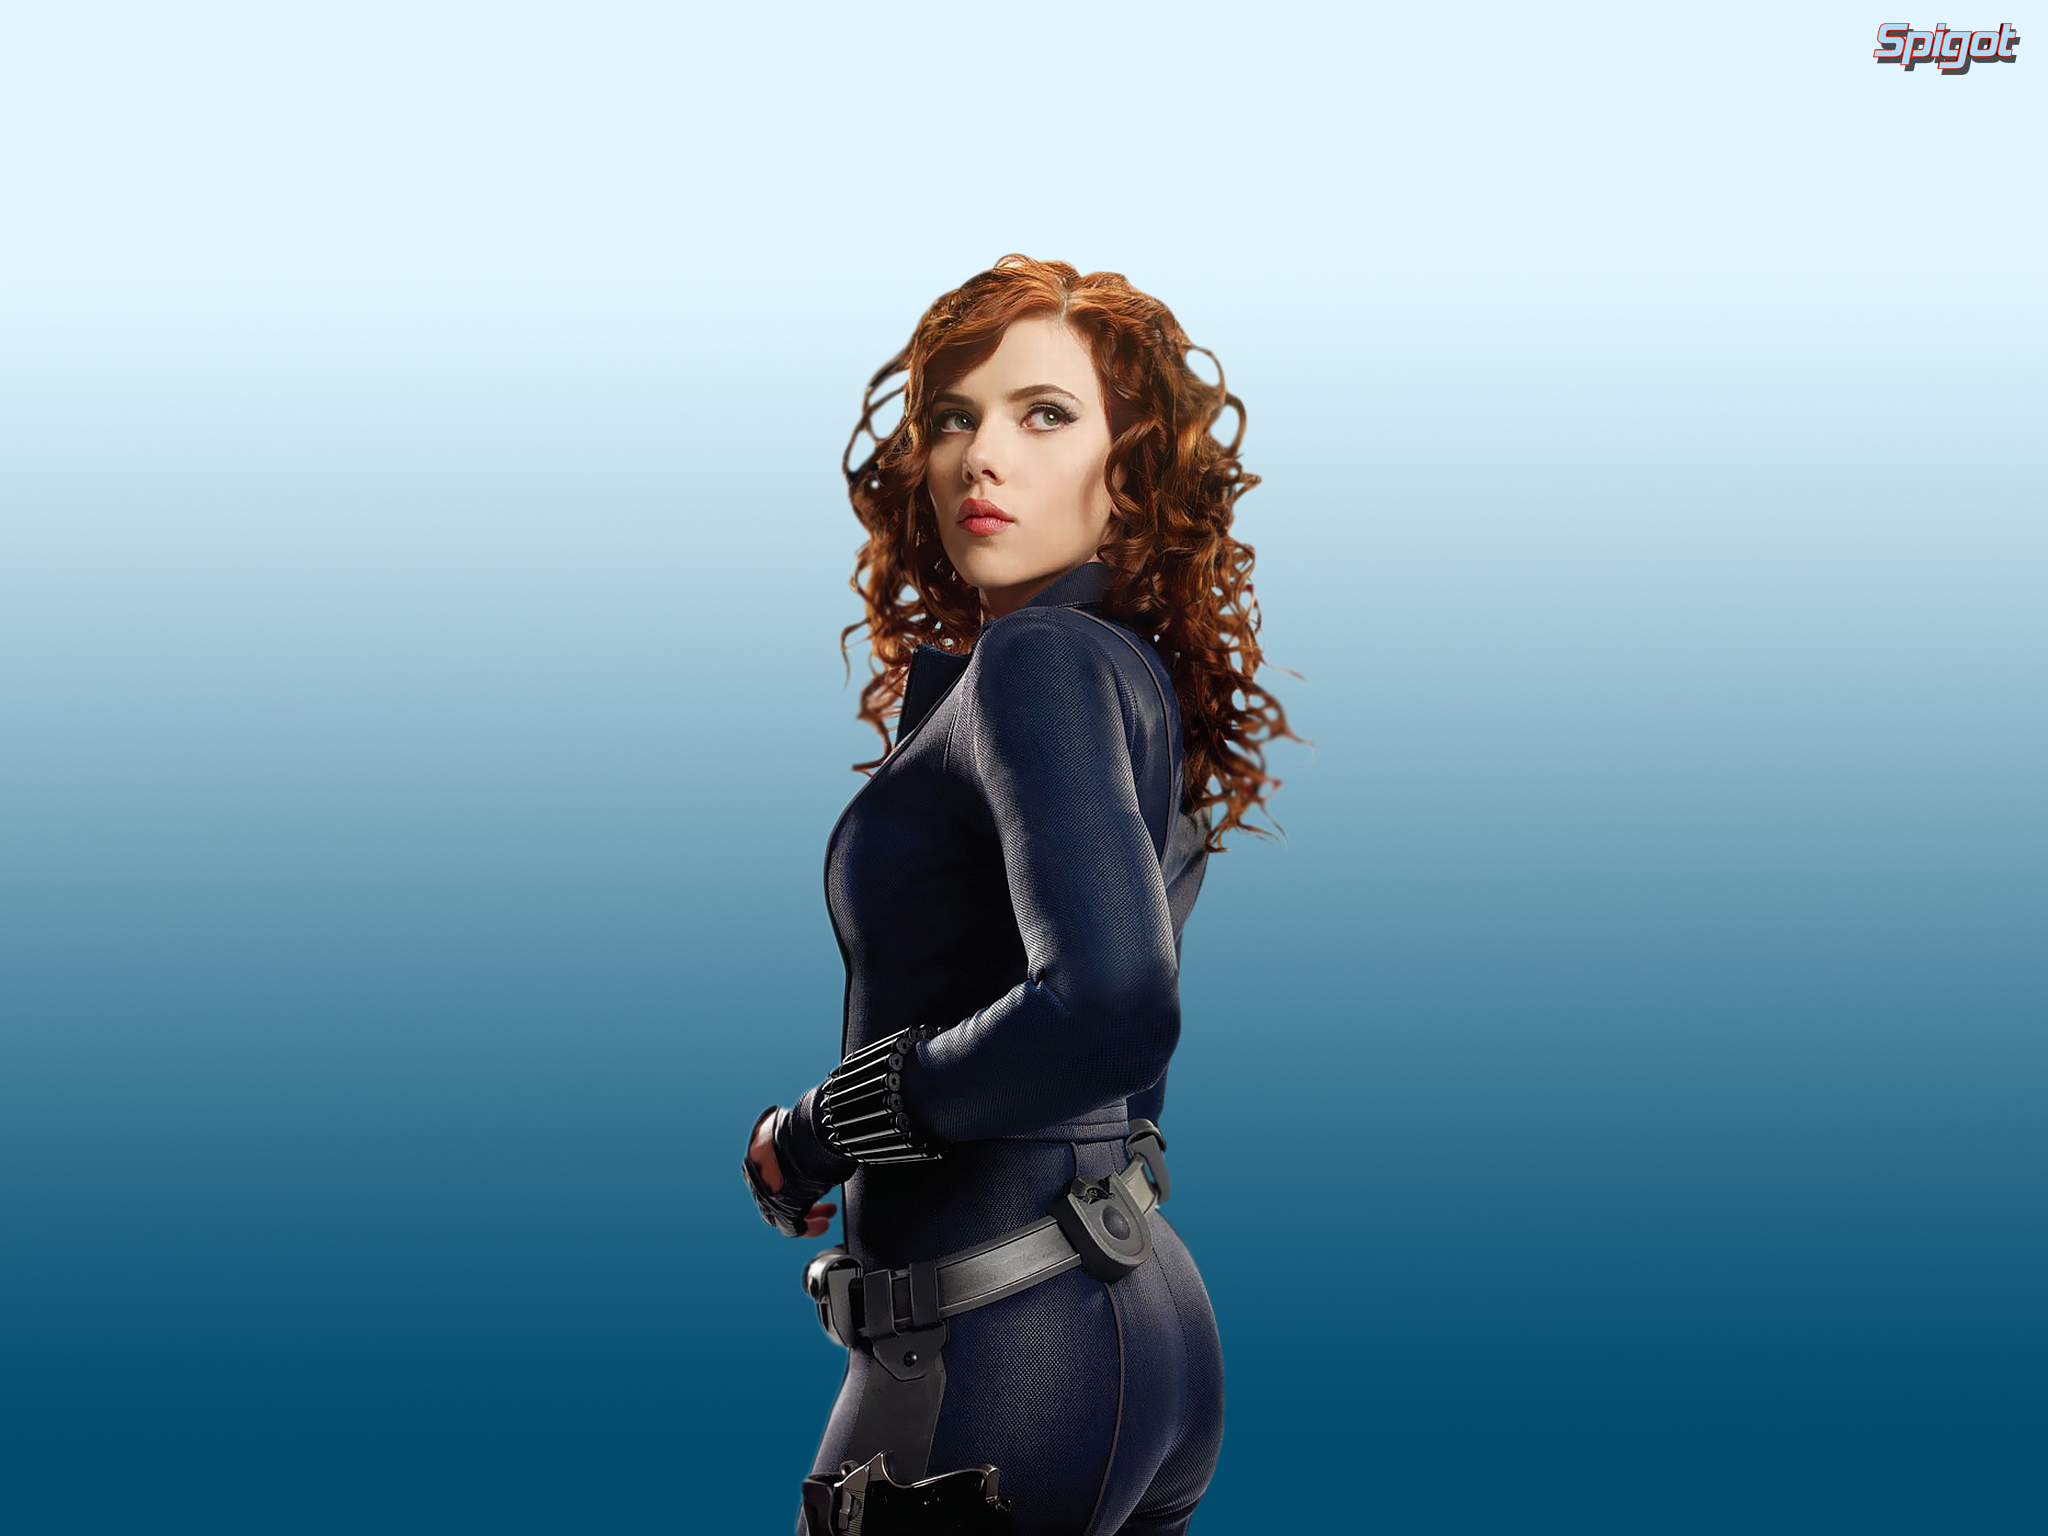 Scarlett johansson black widow wallpaper - photo#9